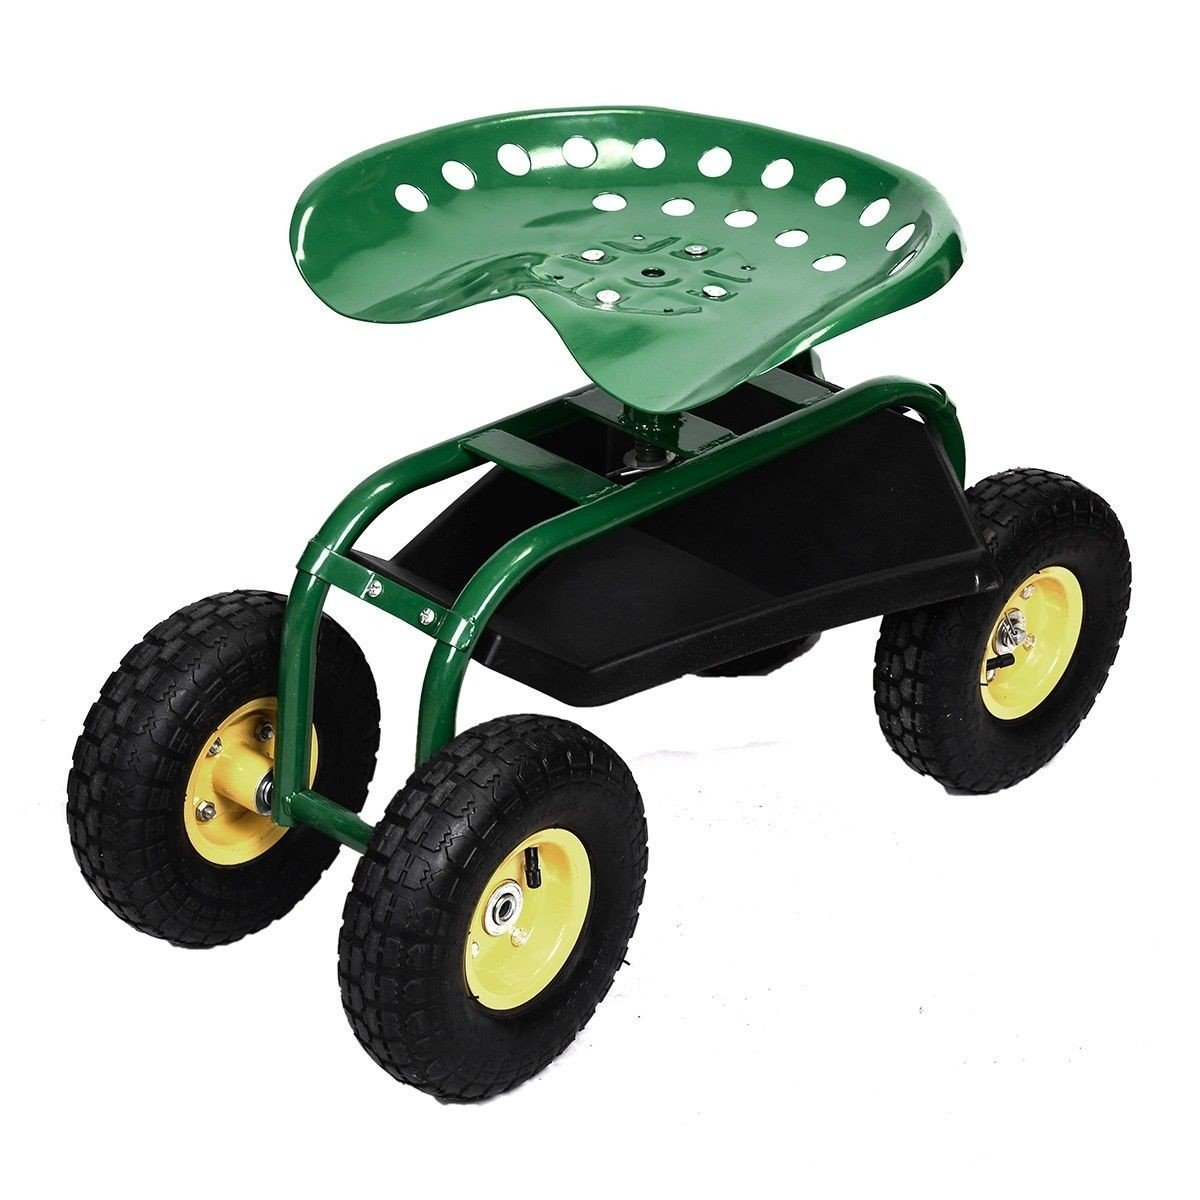 Red / Green Garden Cart with Heavy Duty Tool Tray - By Choice Products (Green)